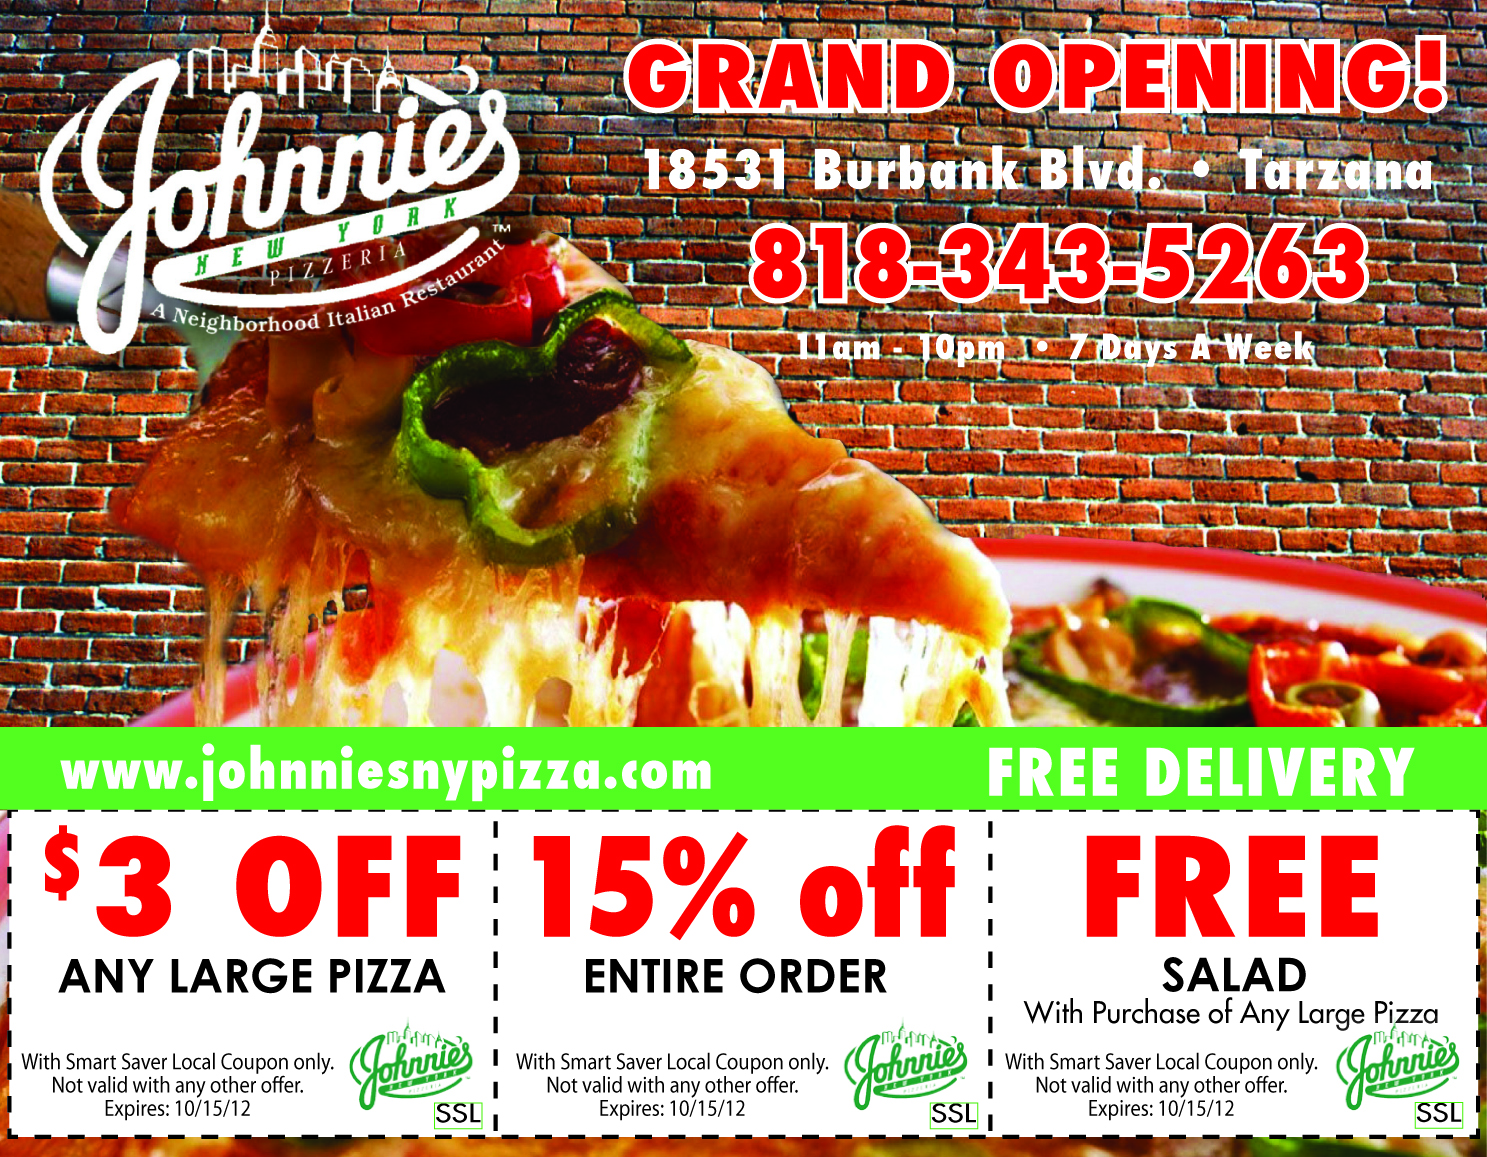 Johnnies NY Pizza